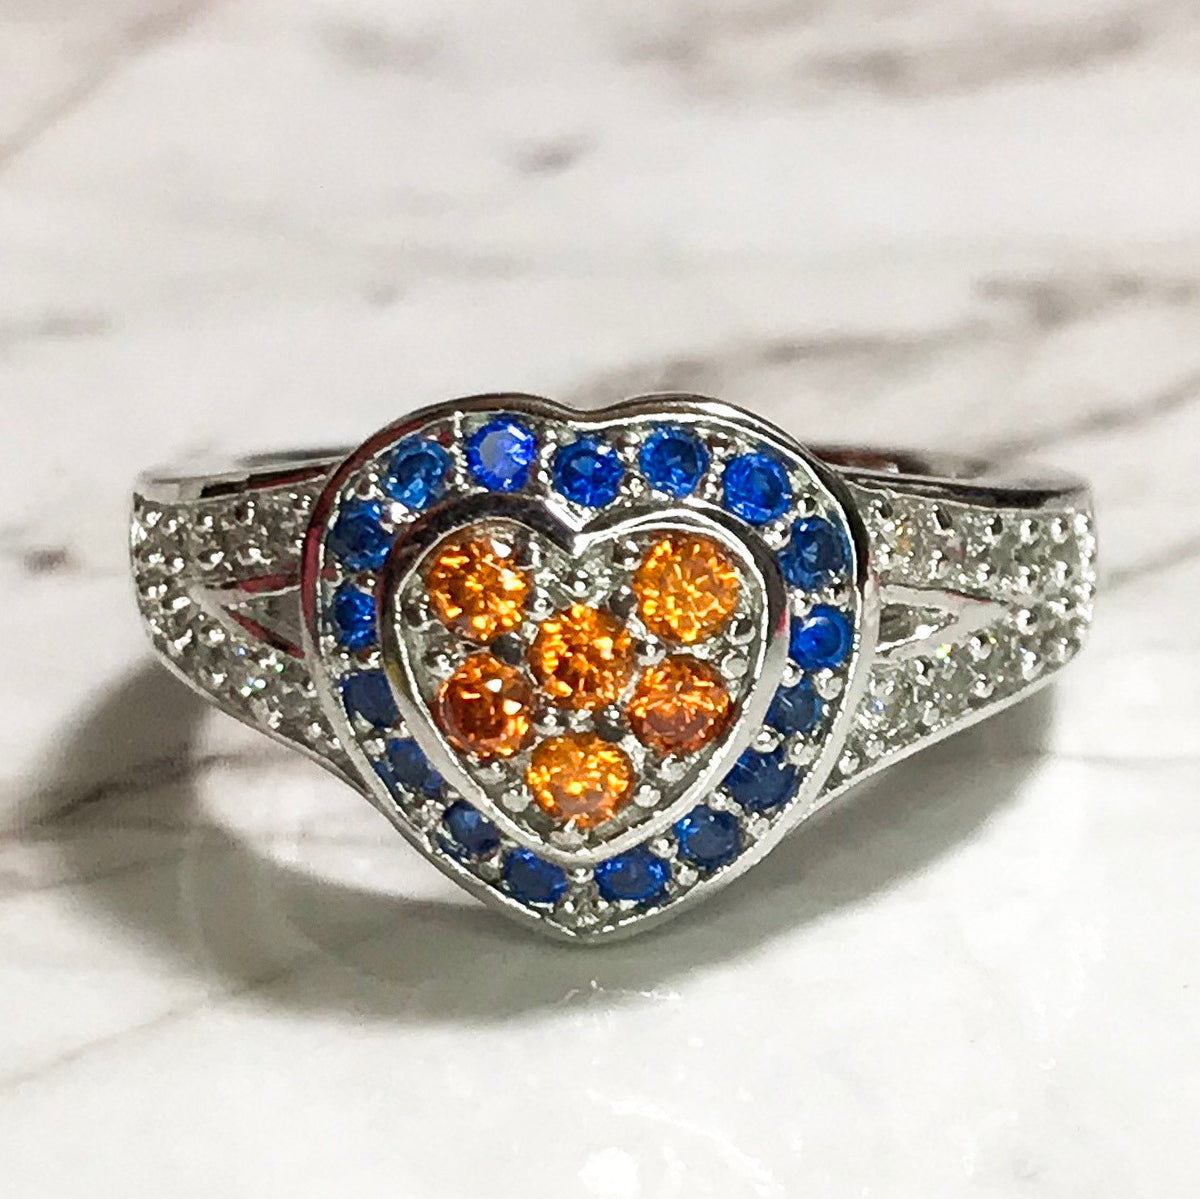 NEW 14K White Gold Layered on Sterling Silver Blue and Orange Stones Heart Ring